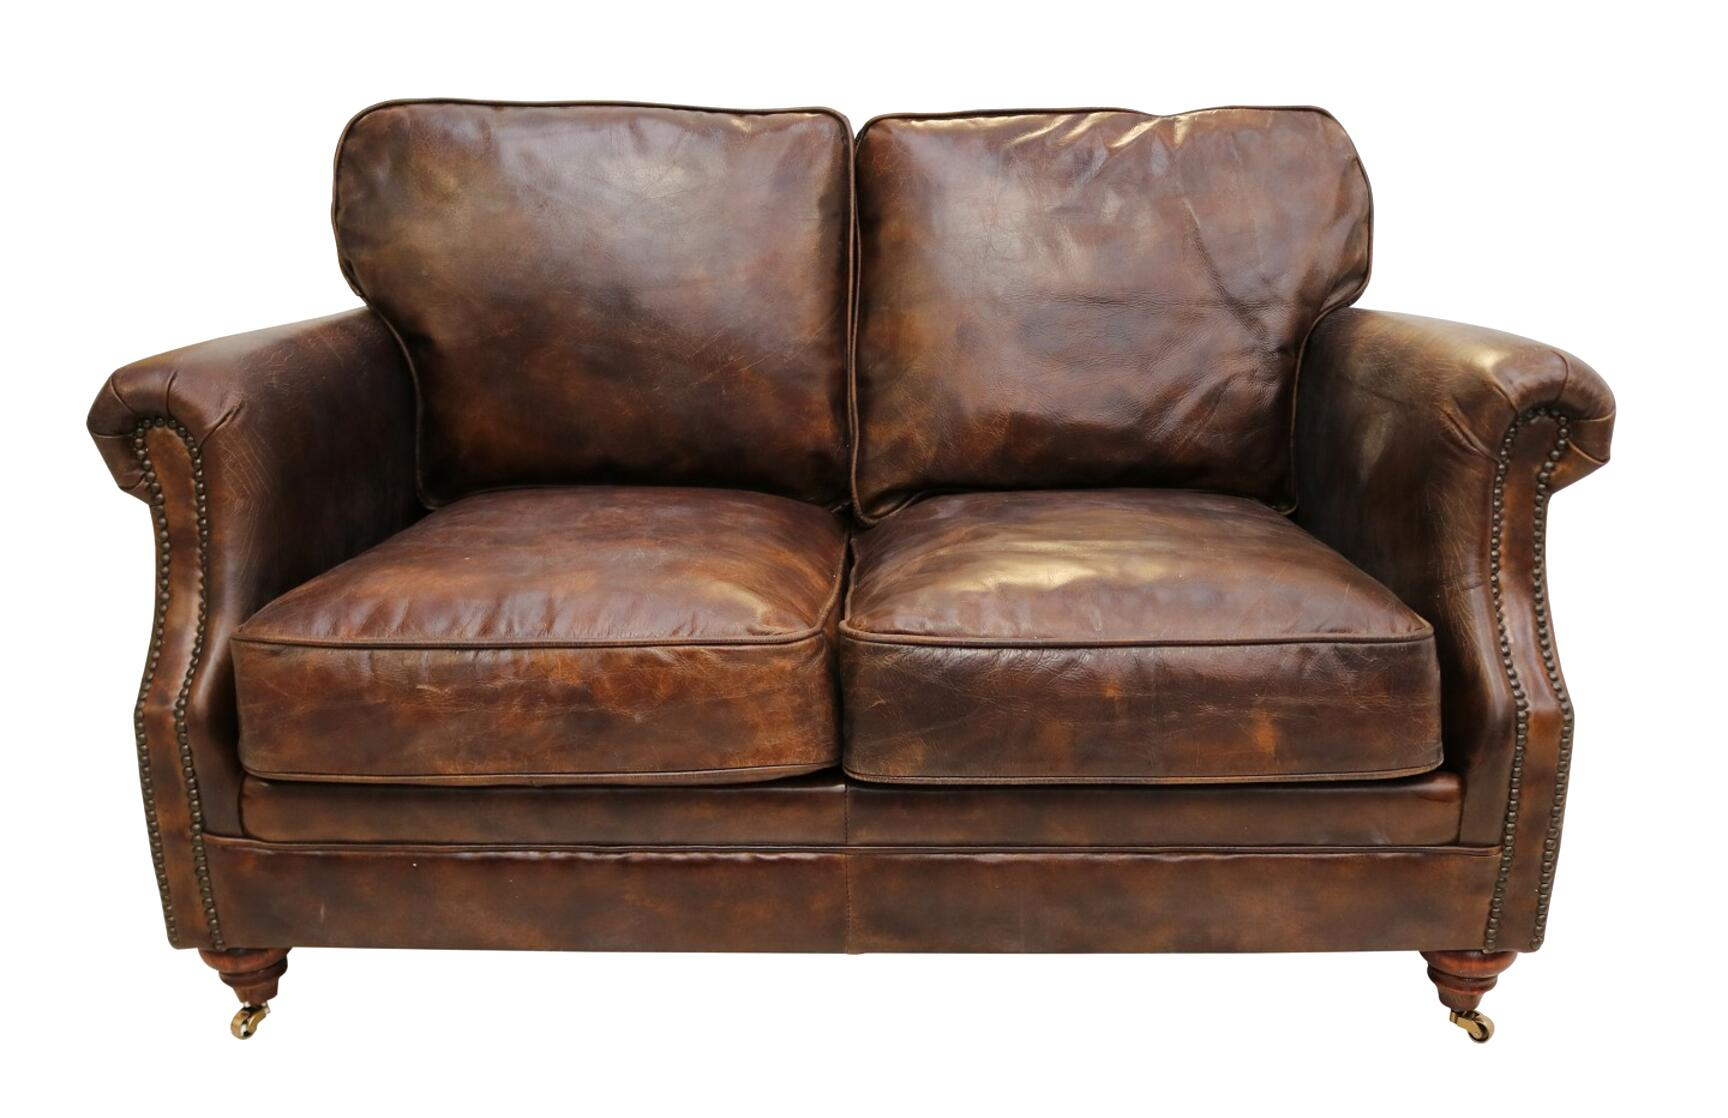 distressed leather sofa for sale